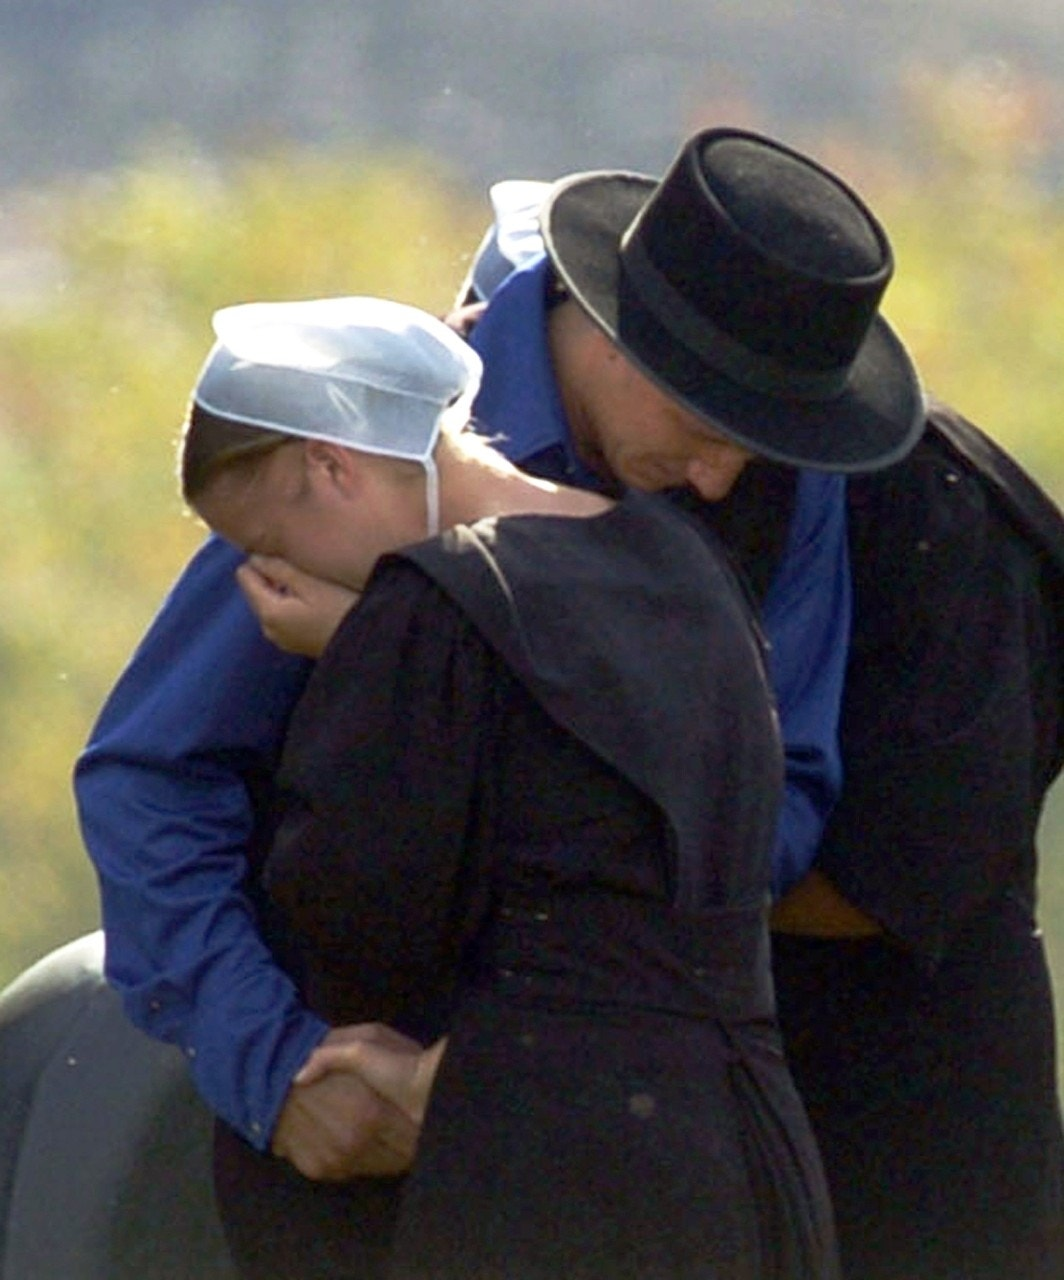 Family Of Pa. Amish Schoolhouse Shooter Shares Hopeful